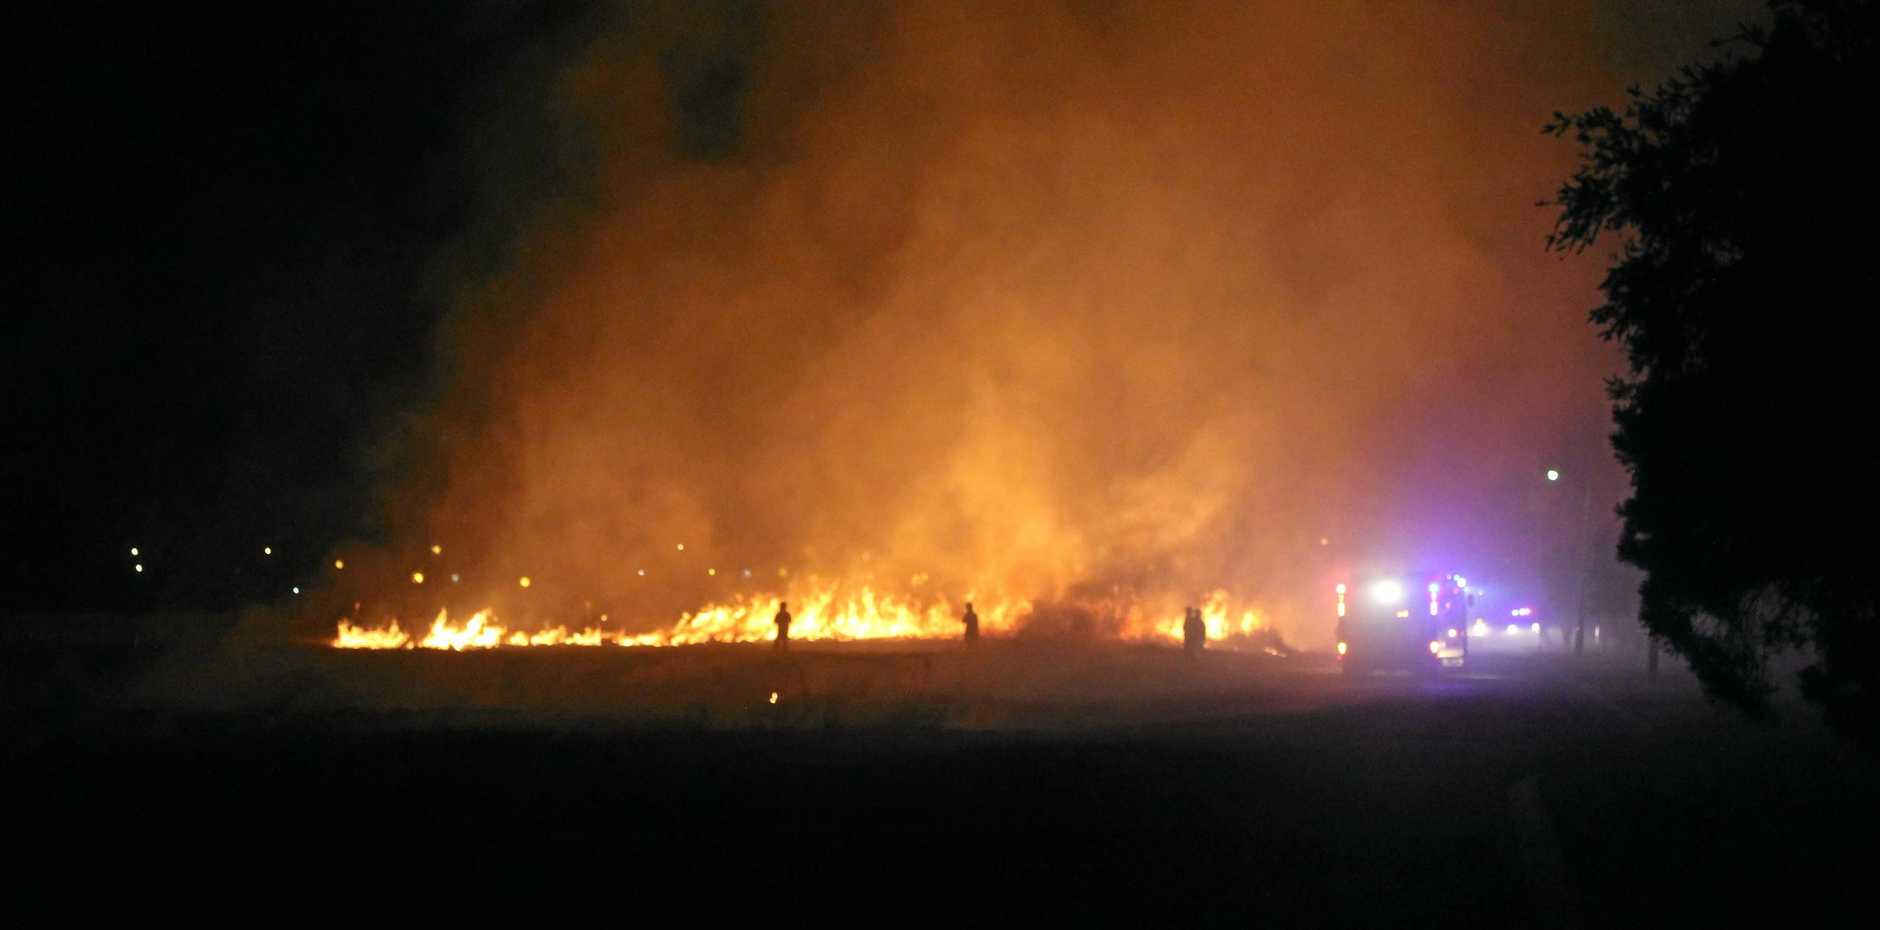 LIT UP: Kingaroy firefighters tackle the blaze on Kelvyn St on the second night, Saturday August 4 at 11pm.